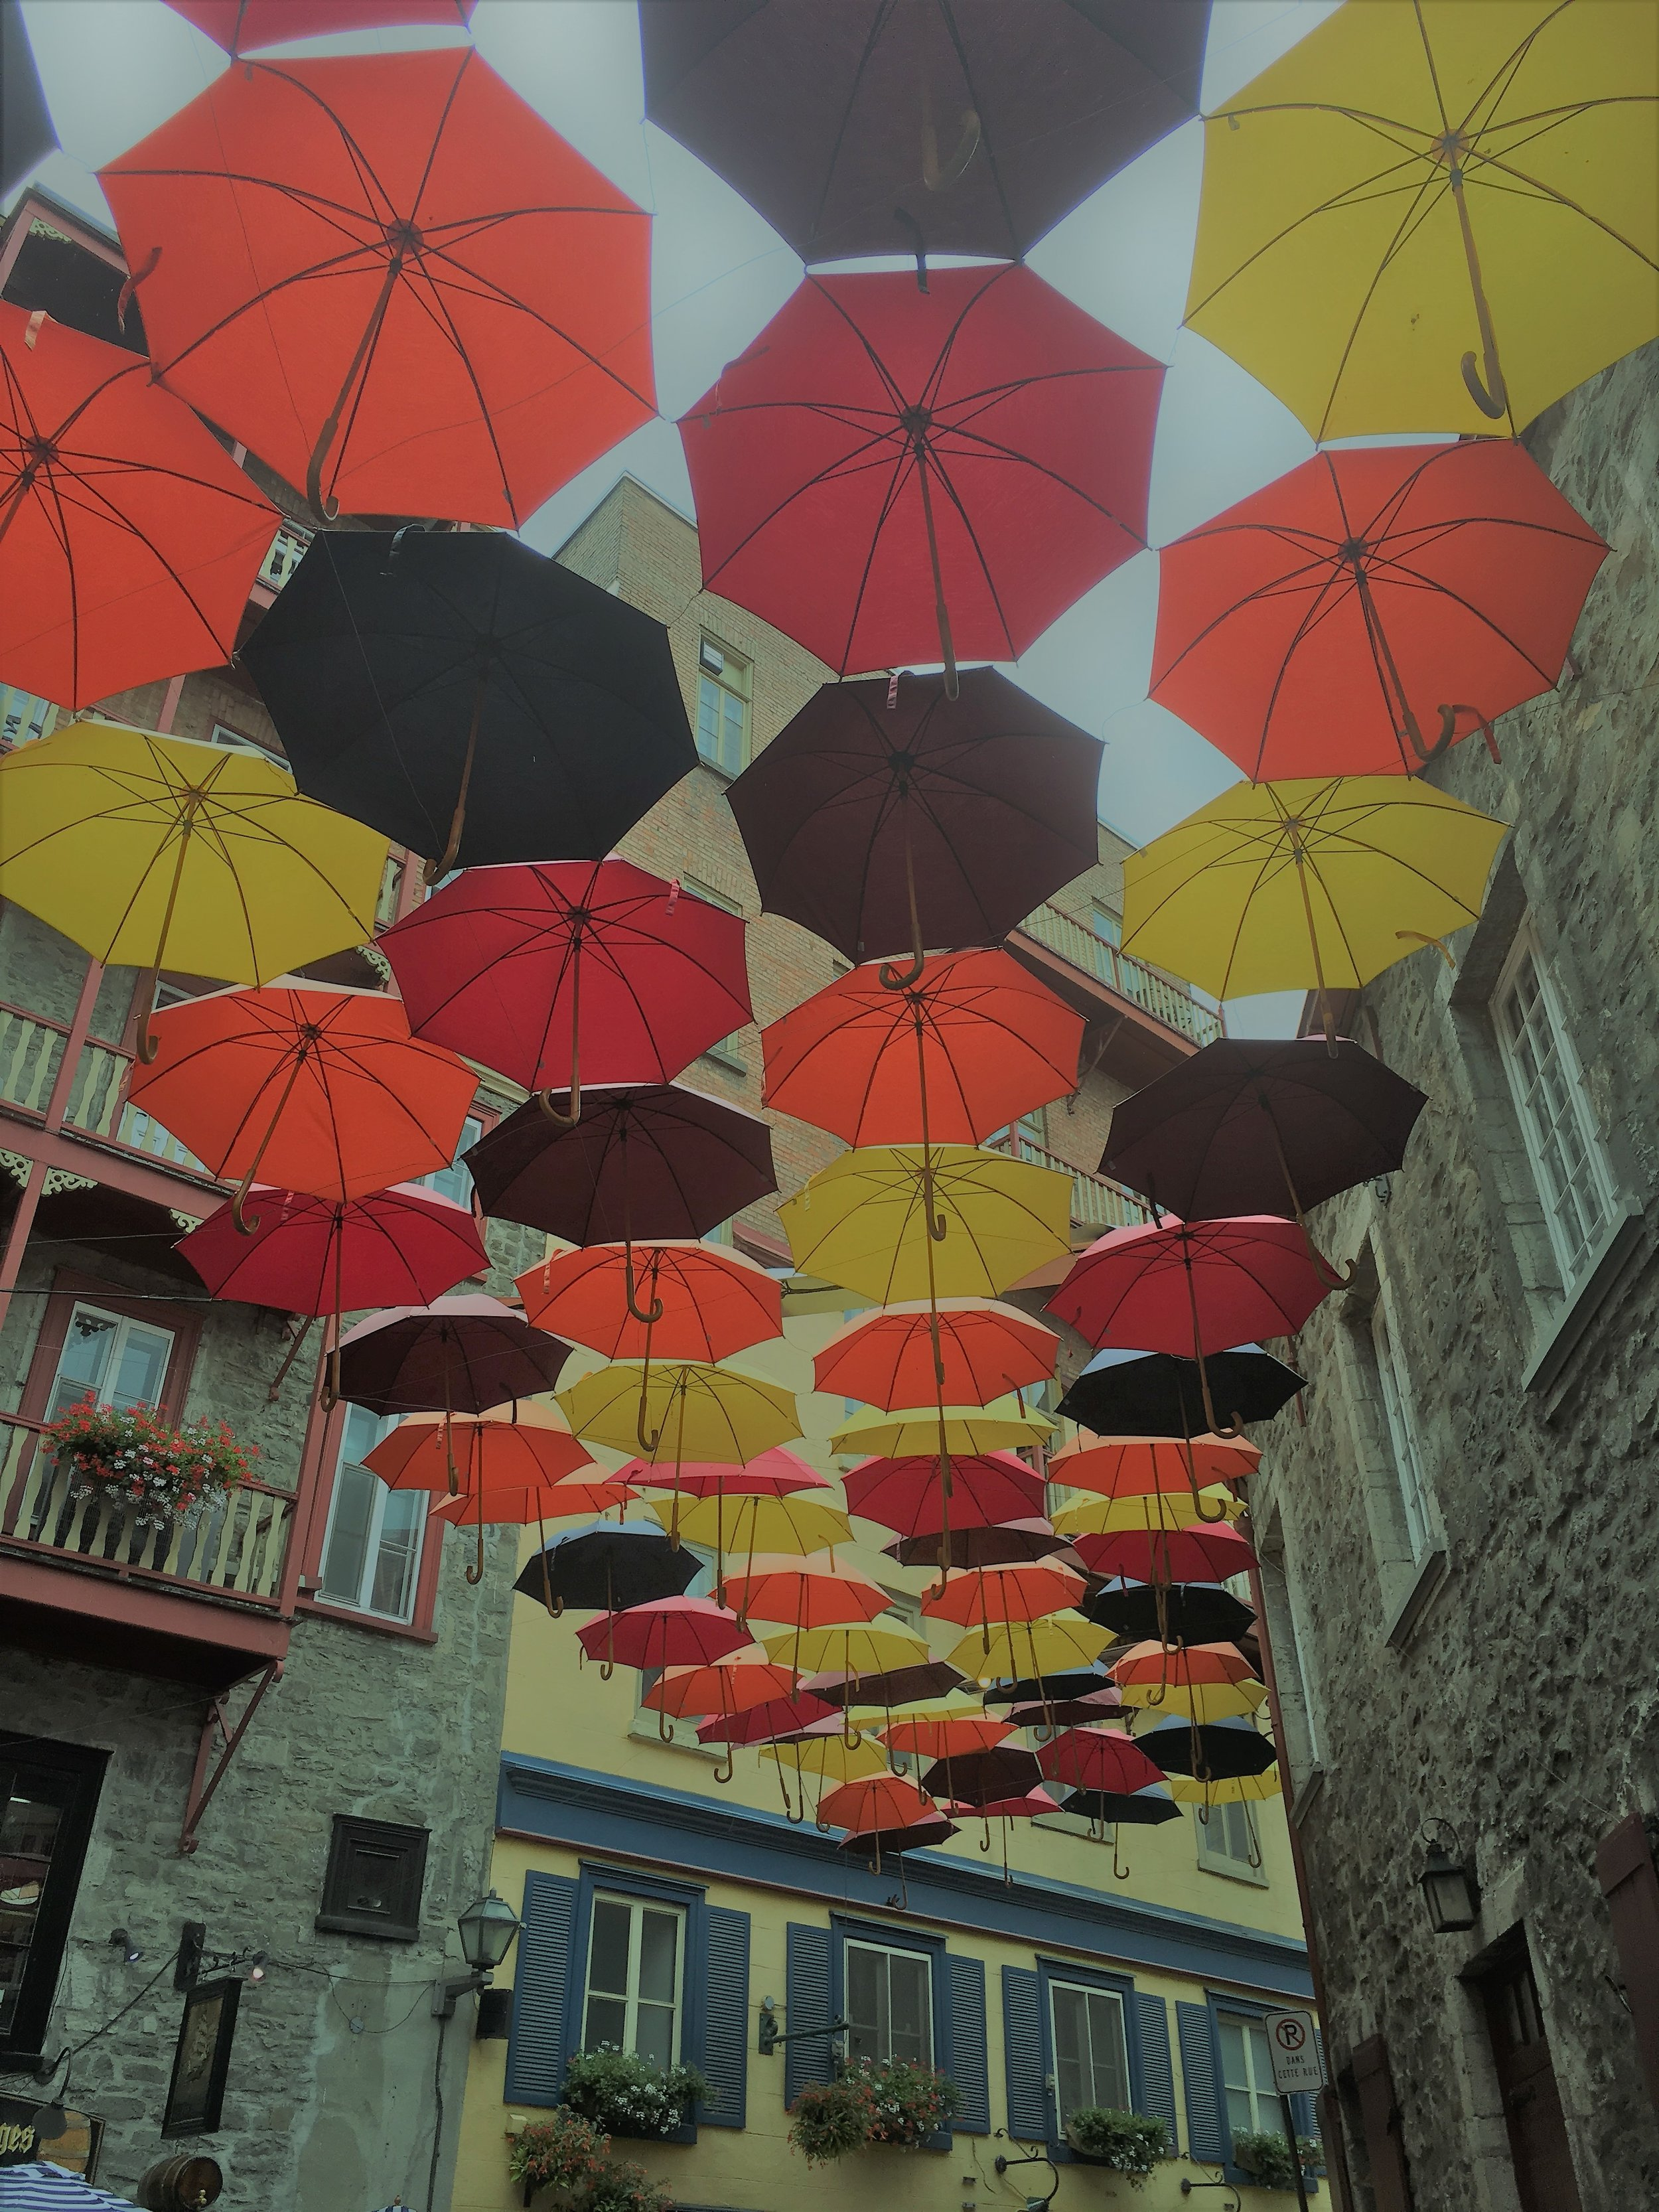 colorful umbrellas floating in sky